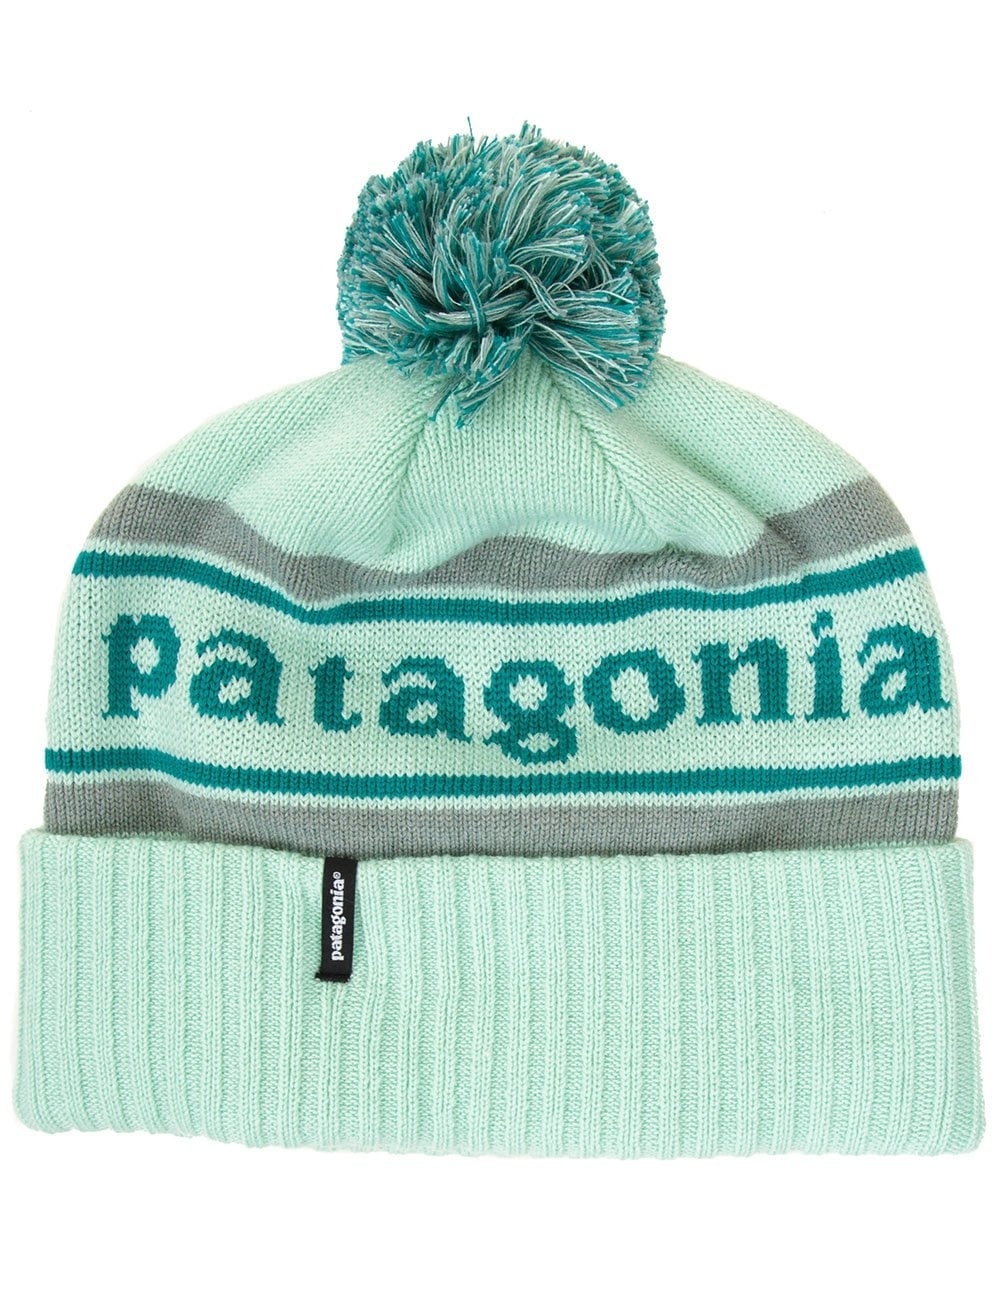 8d6cca82cdf Patagonia Powder Town Beanie - Arctic Mint - Hat Shop from Fat ...